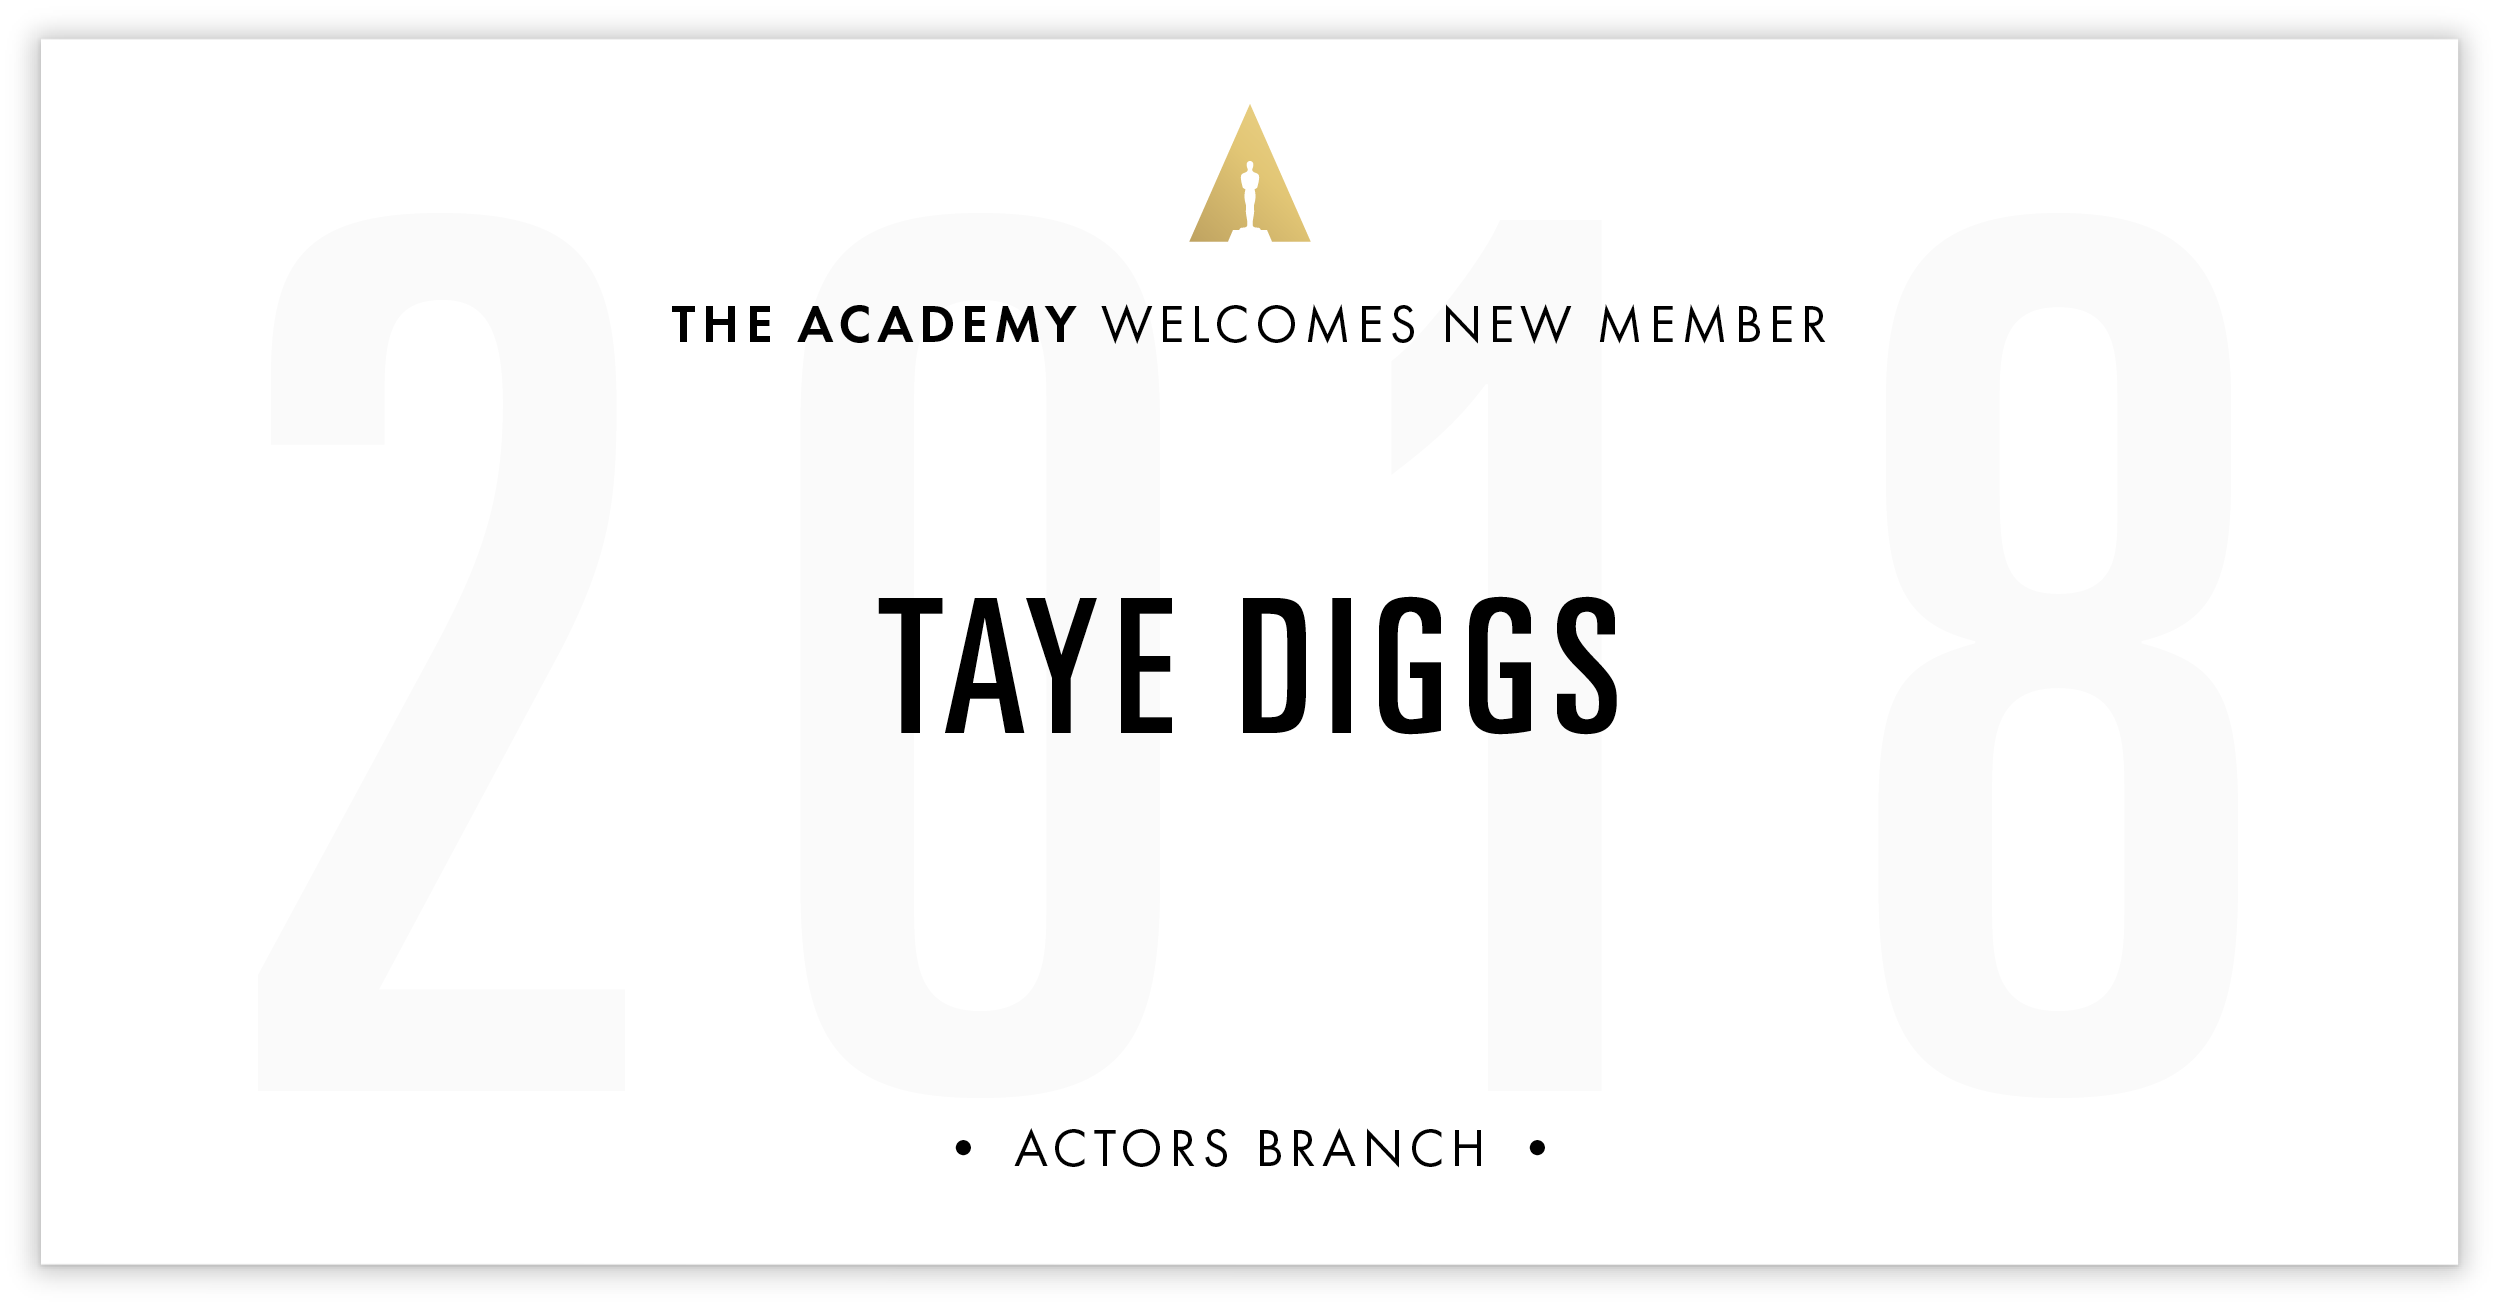 Taye Diggs is invited!